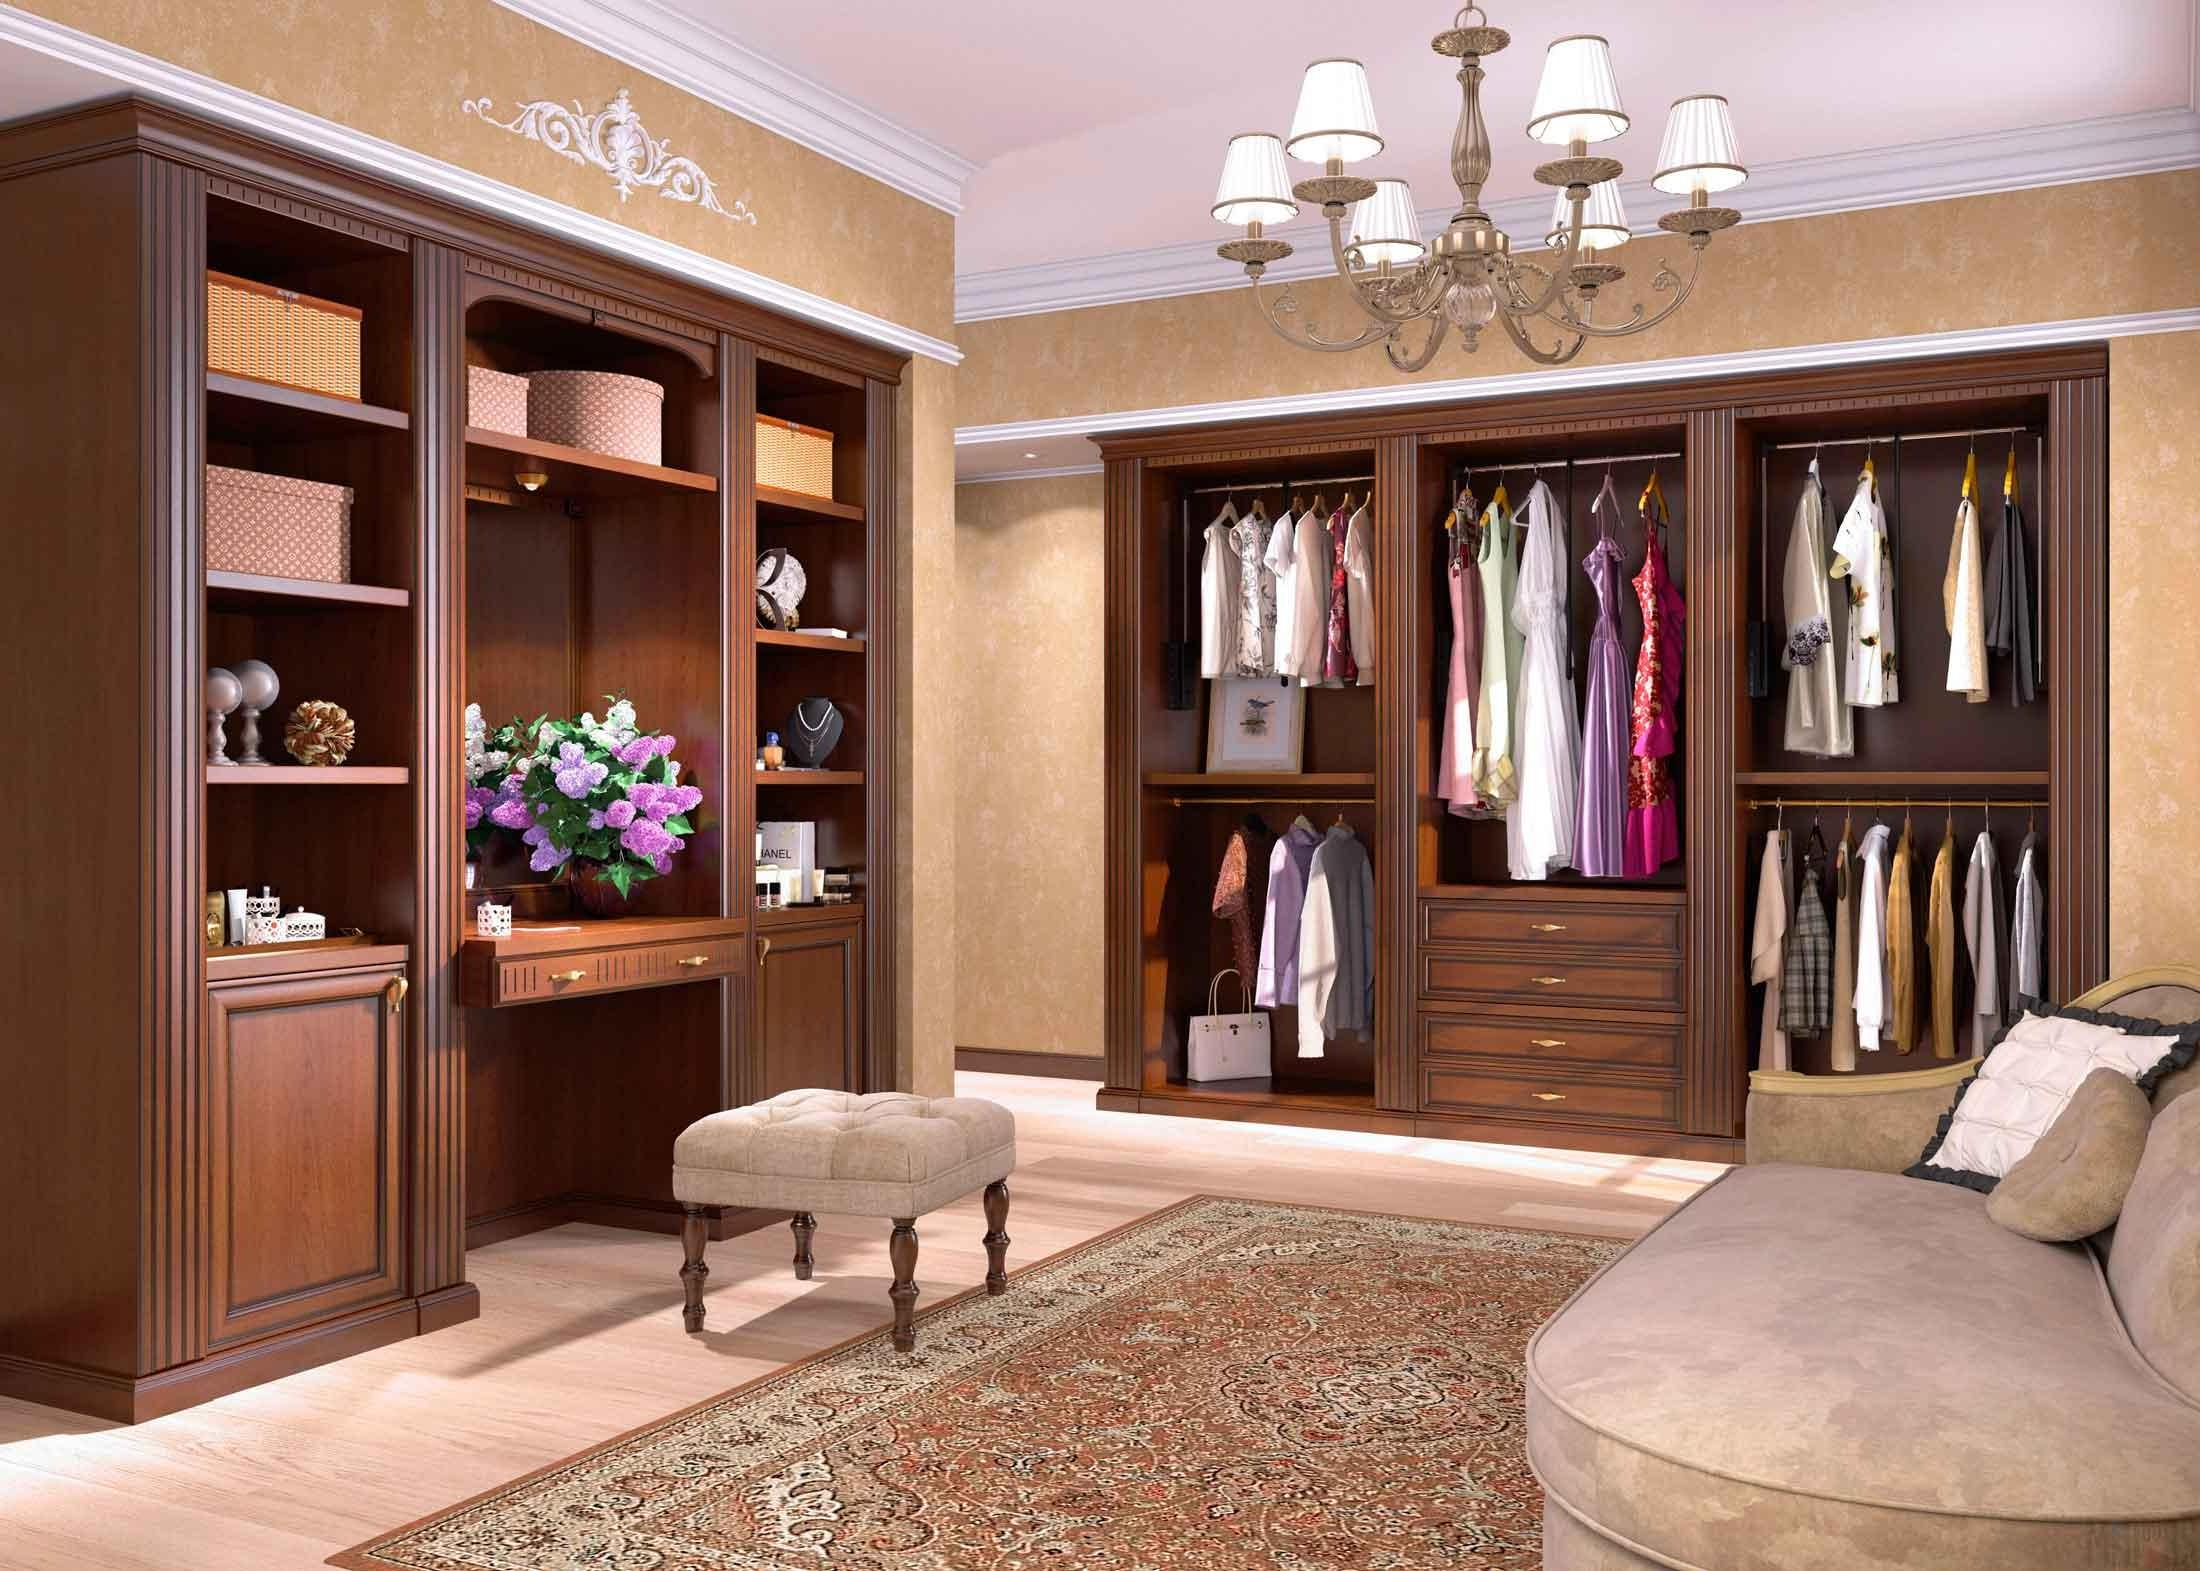 interior of the dressing room in the style of Italian classics